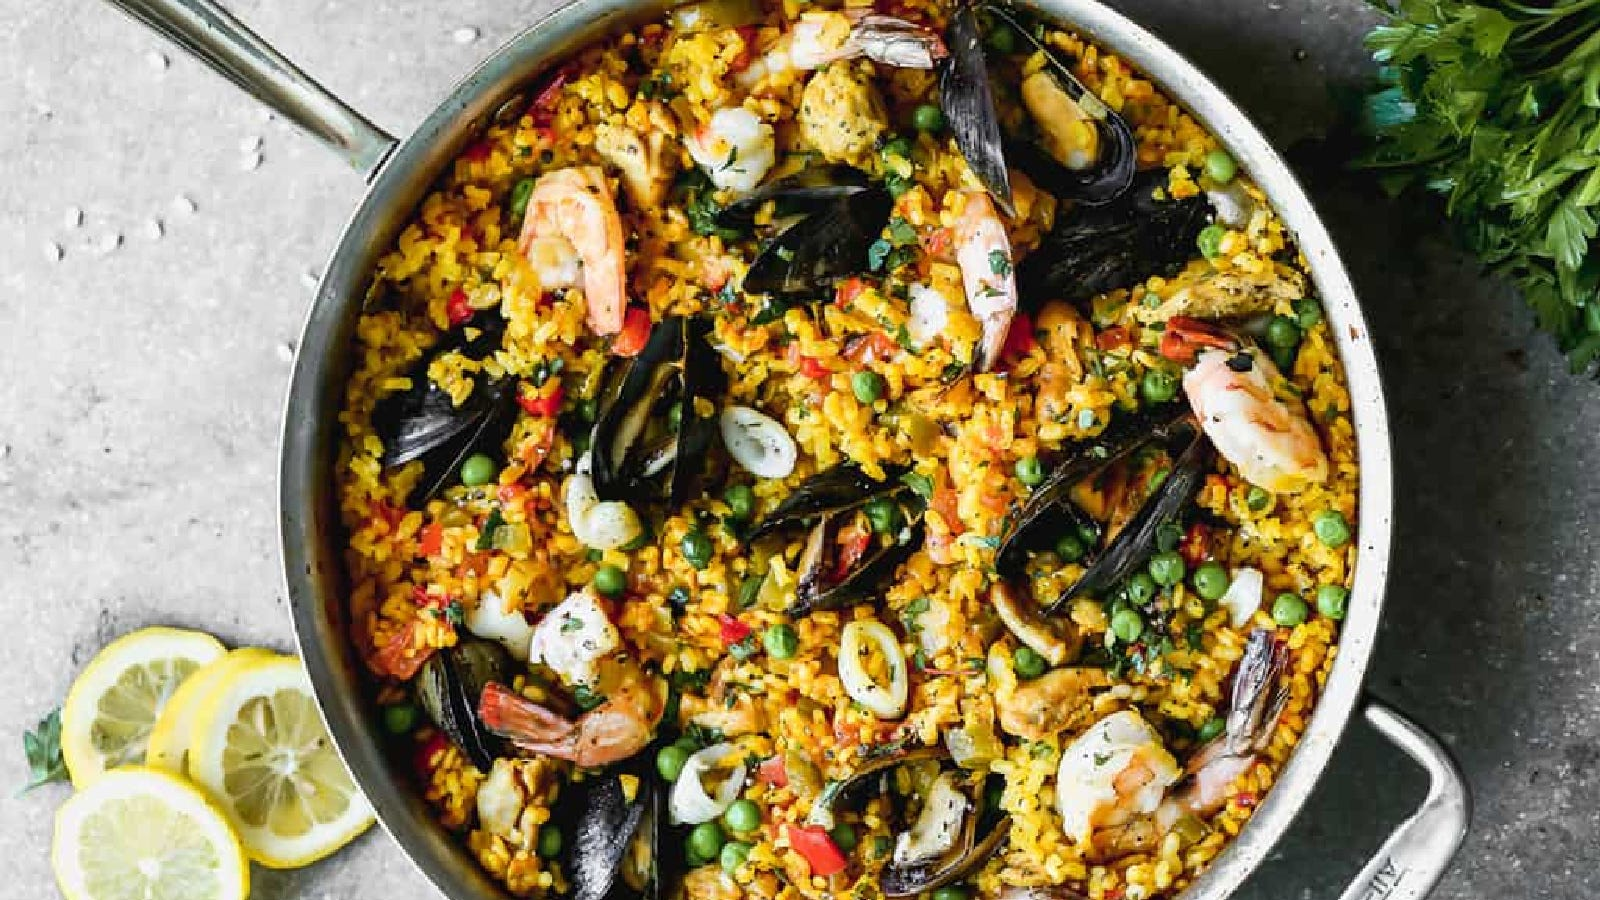 A large deep skillet filled with paella highlighting ingredients like mussels, shrimp, calamari and more.